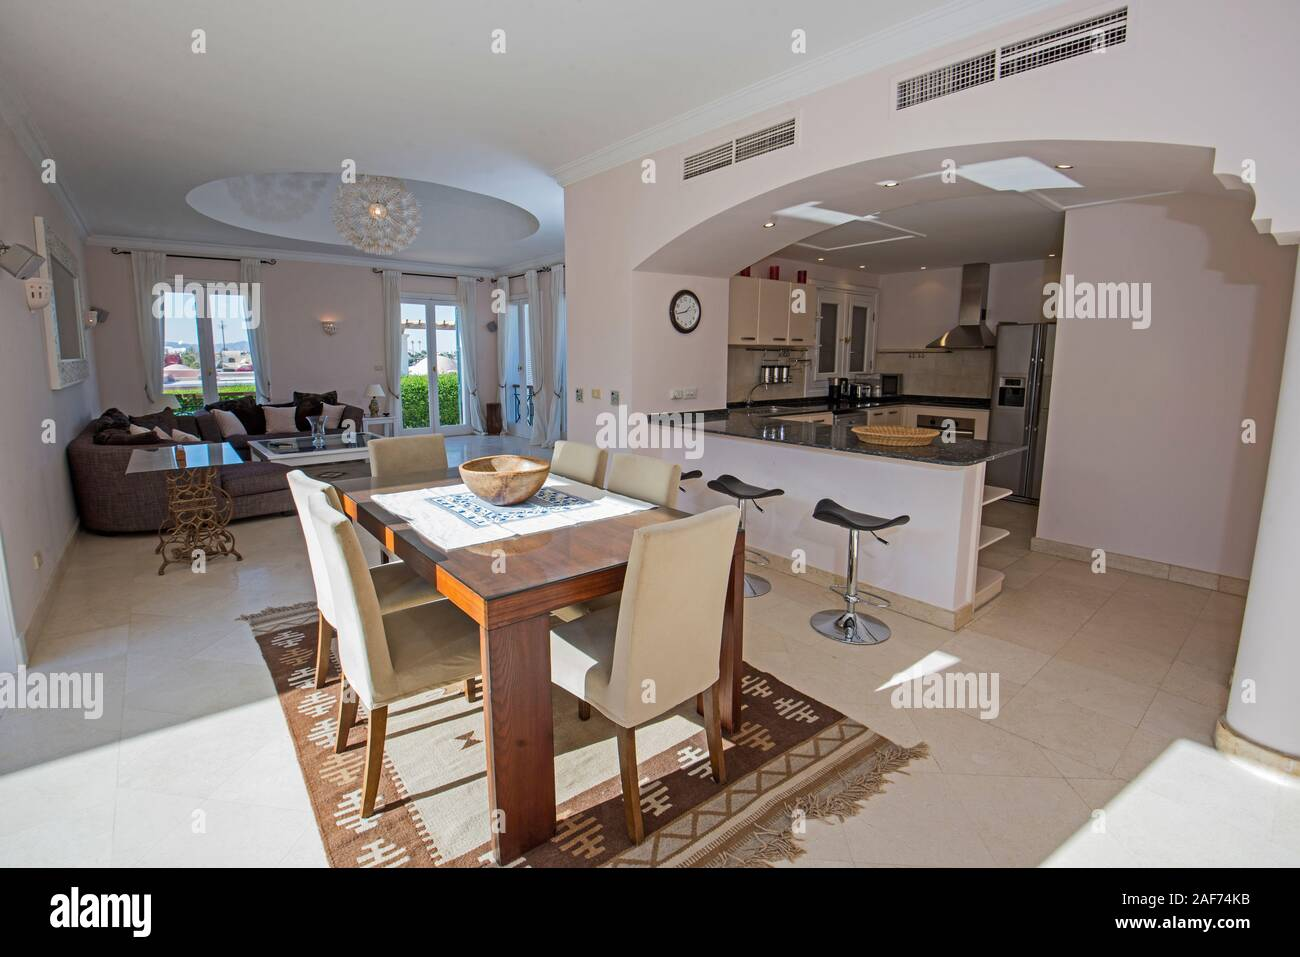 Living Room Lounge In Luxury Villa Show Home Showing Interior Design Decor Furnishing And Open Plan Kitchen Dining Area Stock Photo Alamy